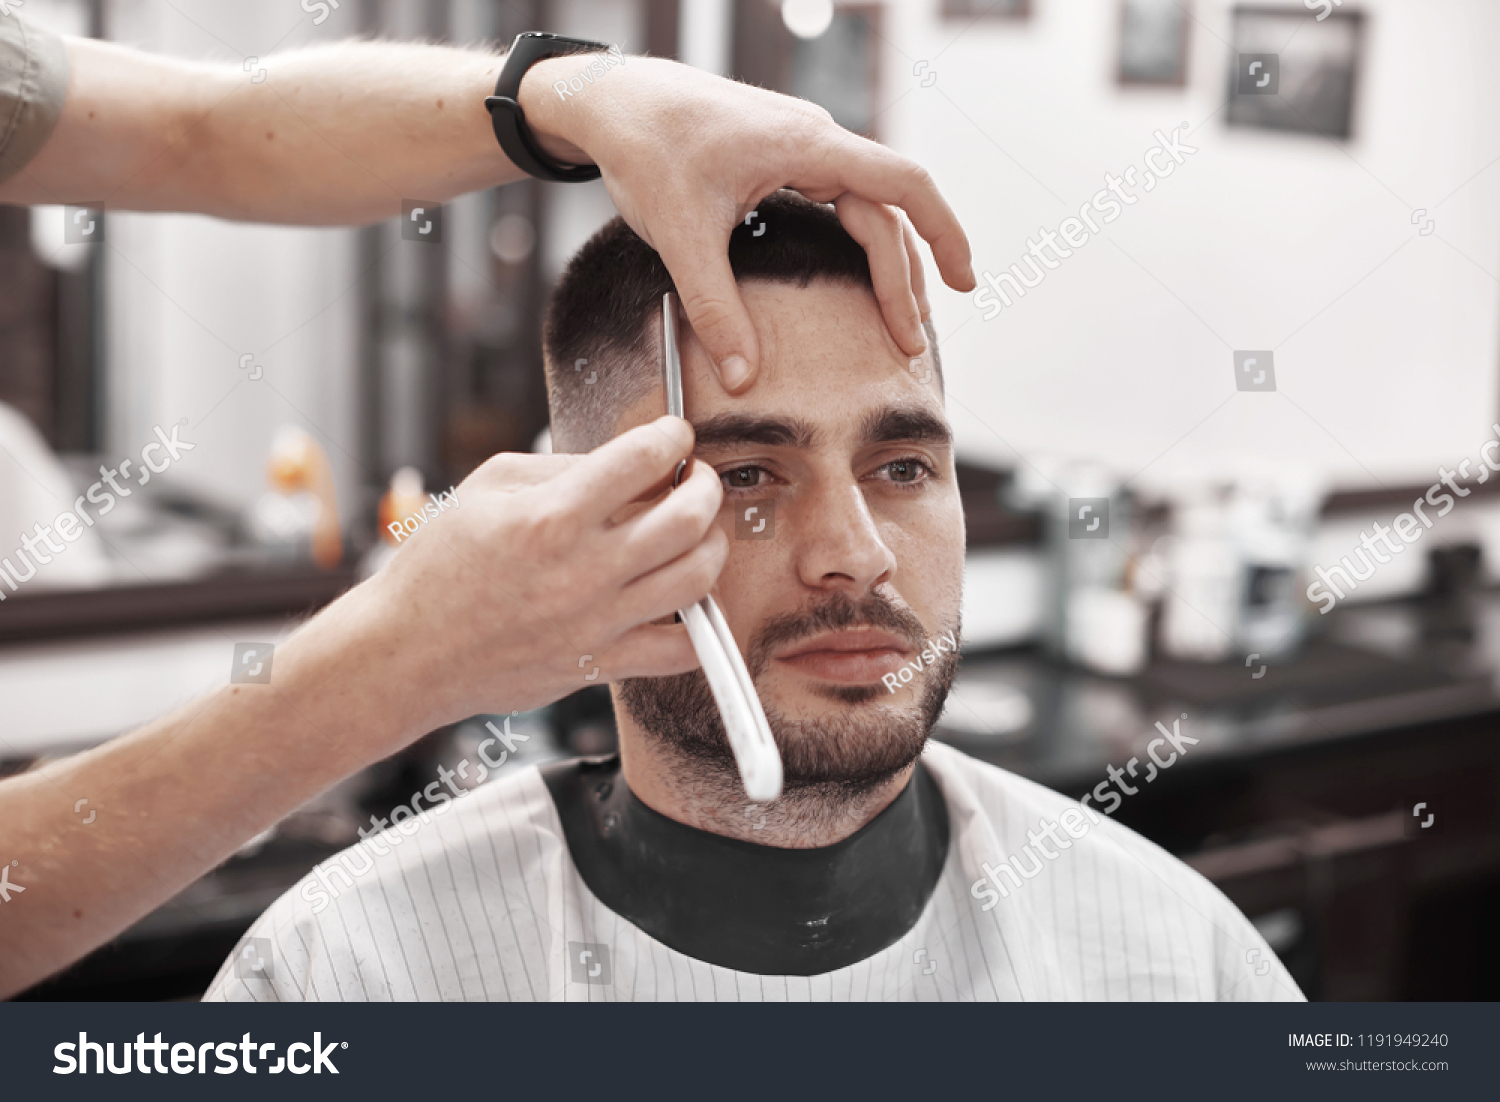 Hair Care Mens Hairstyles Hairdressing Salons Stock Photo (Edit Now ...